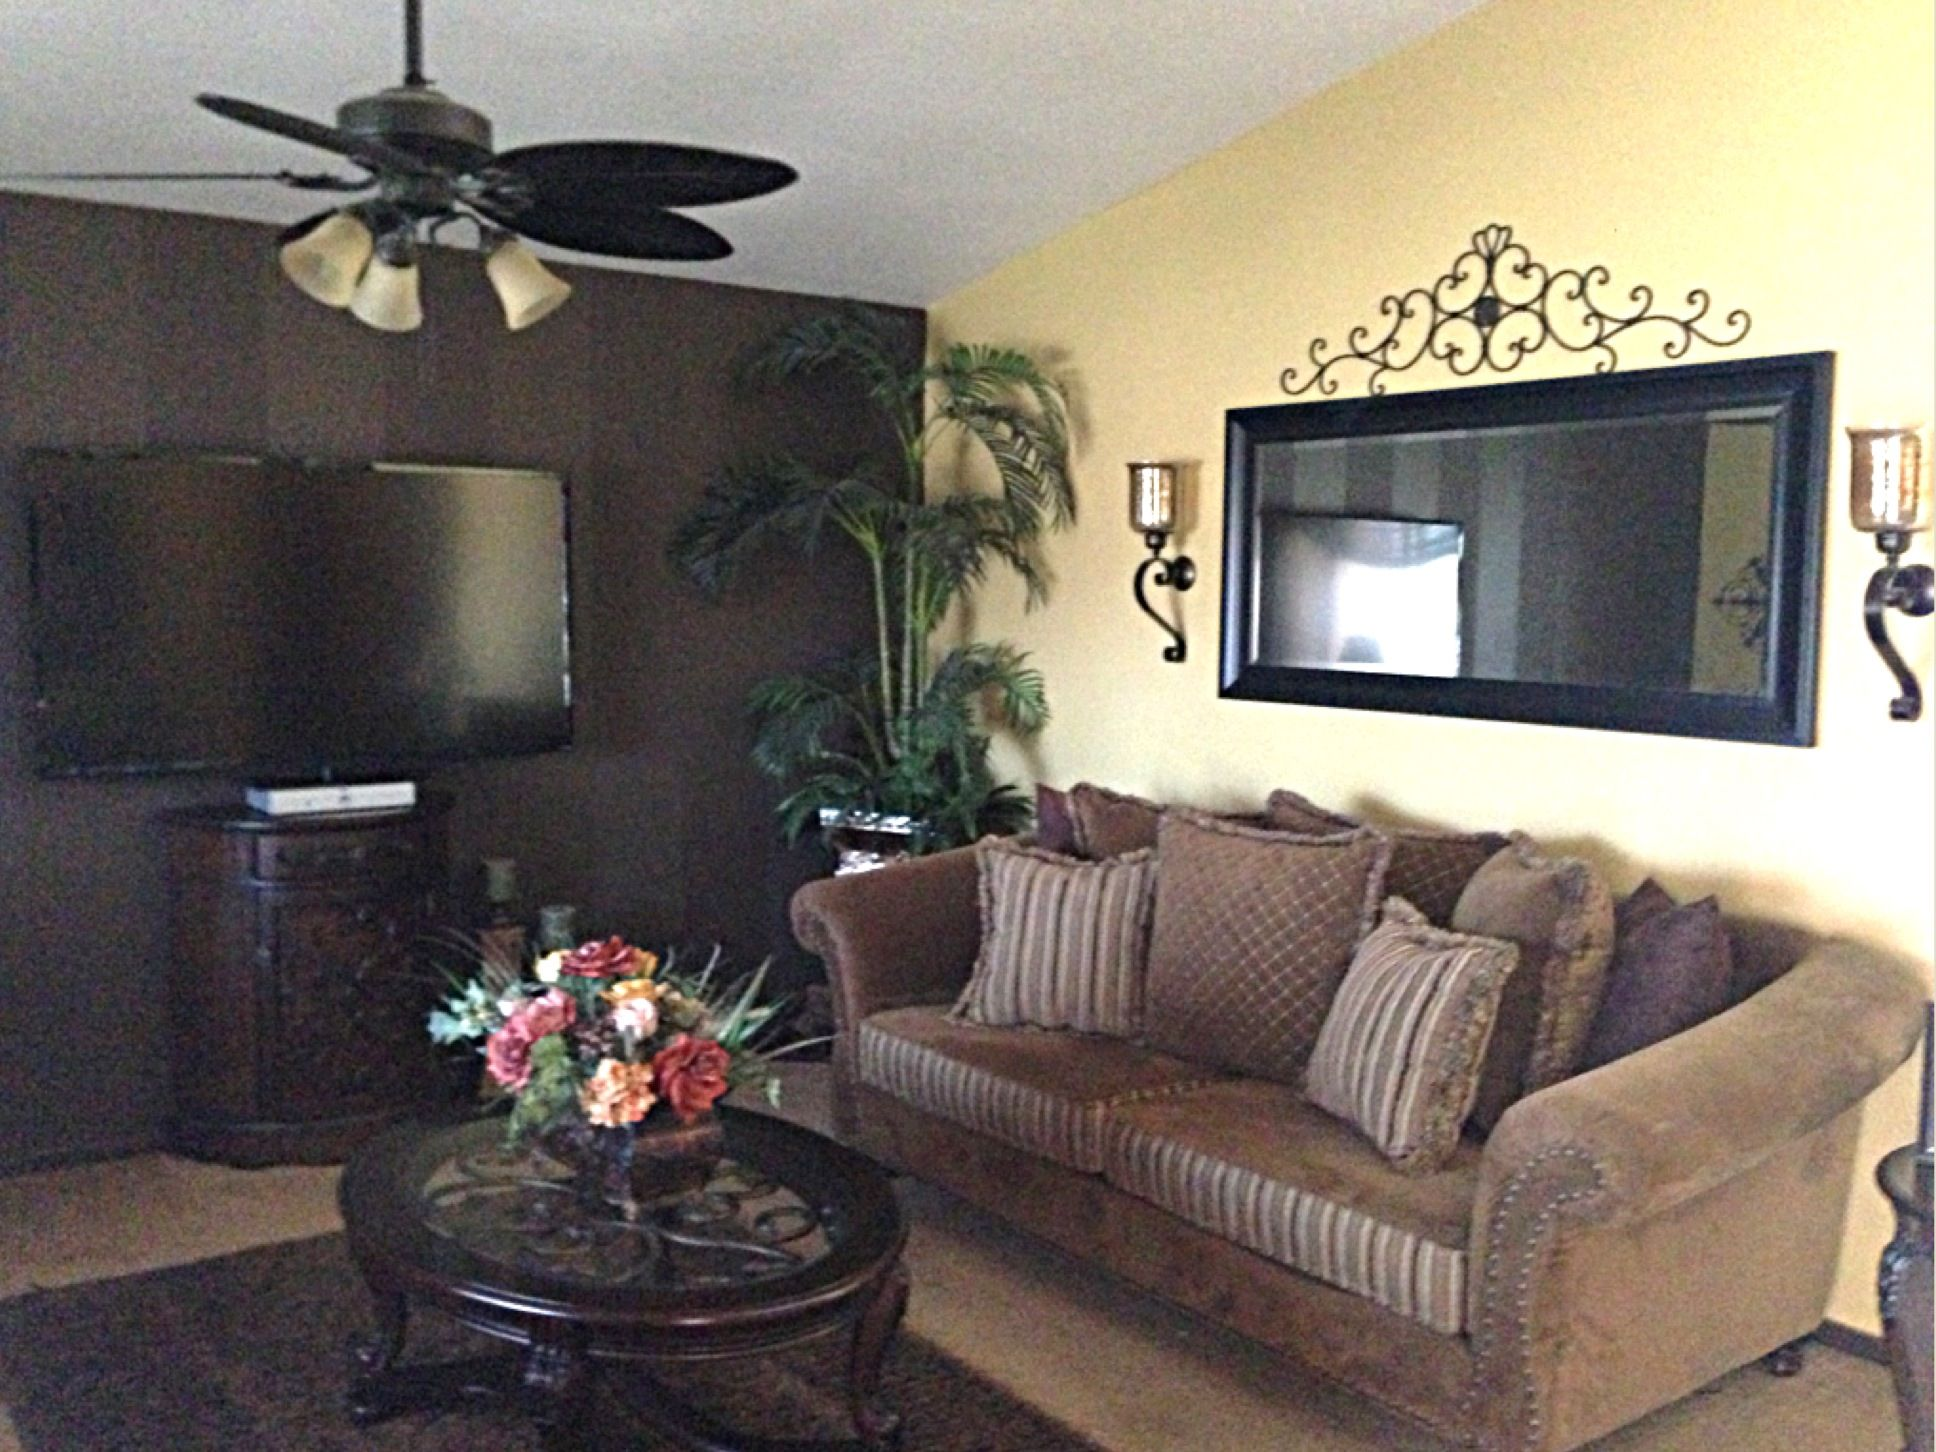 Exceptional Loving Room Decoe Iron Decor My Living Room❤ Dark Brown Striped Wall Ashley  Furniture And